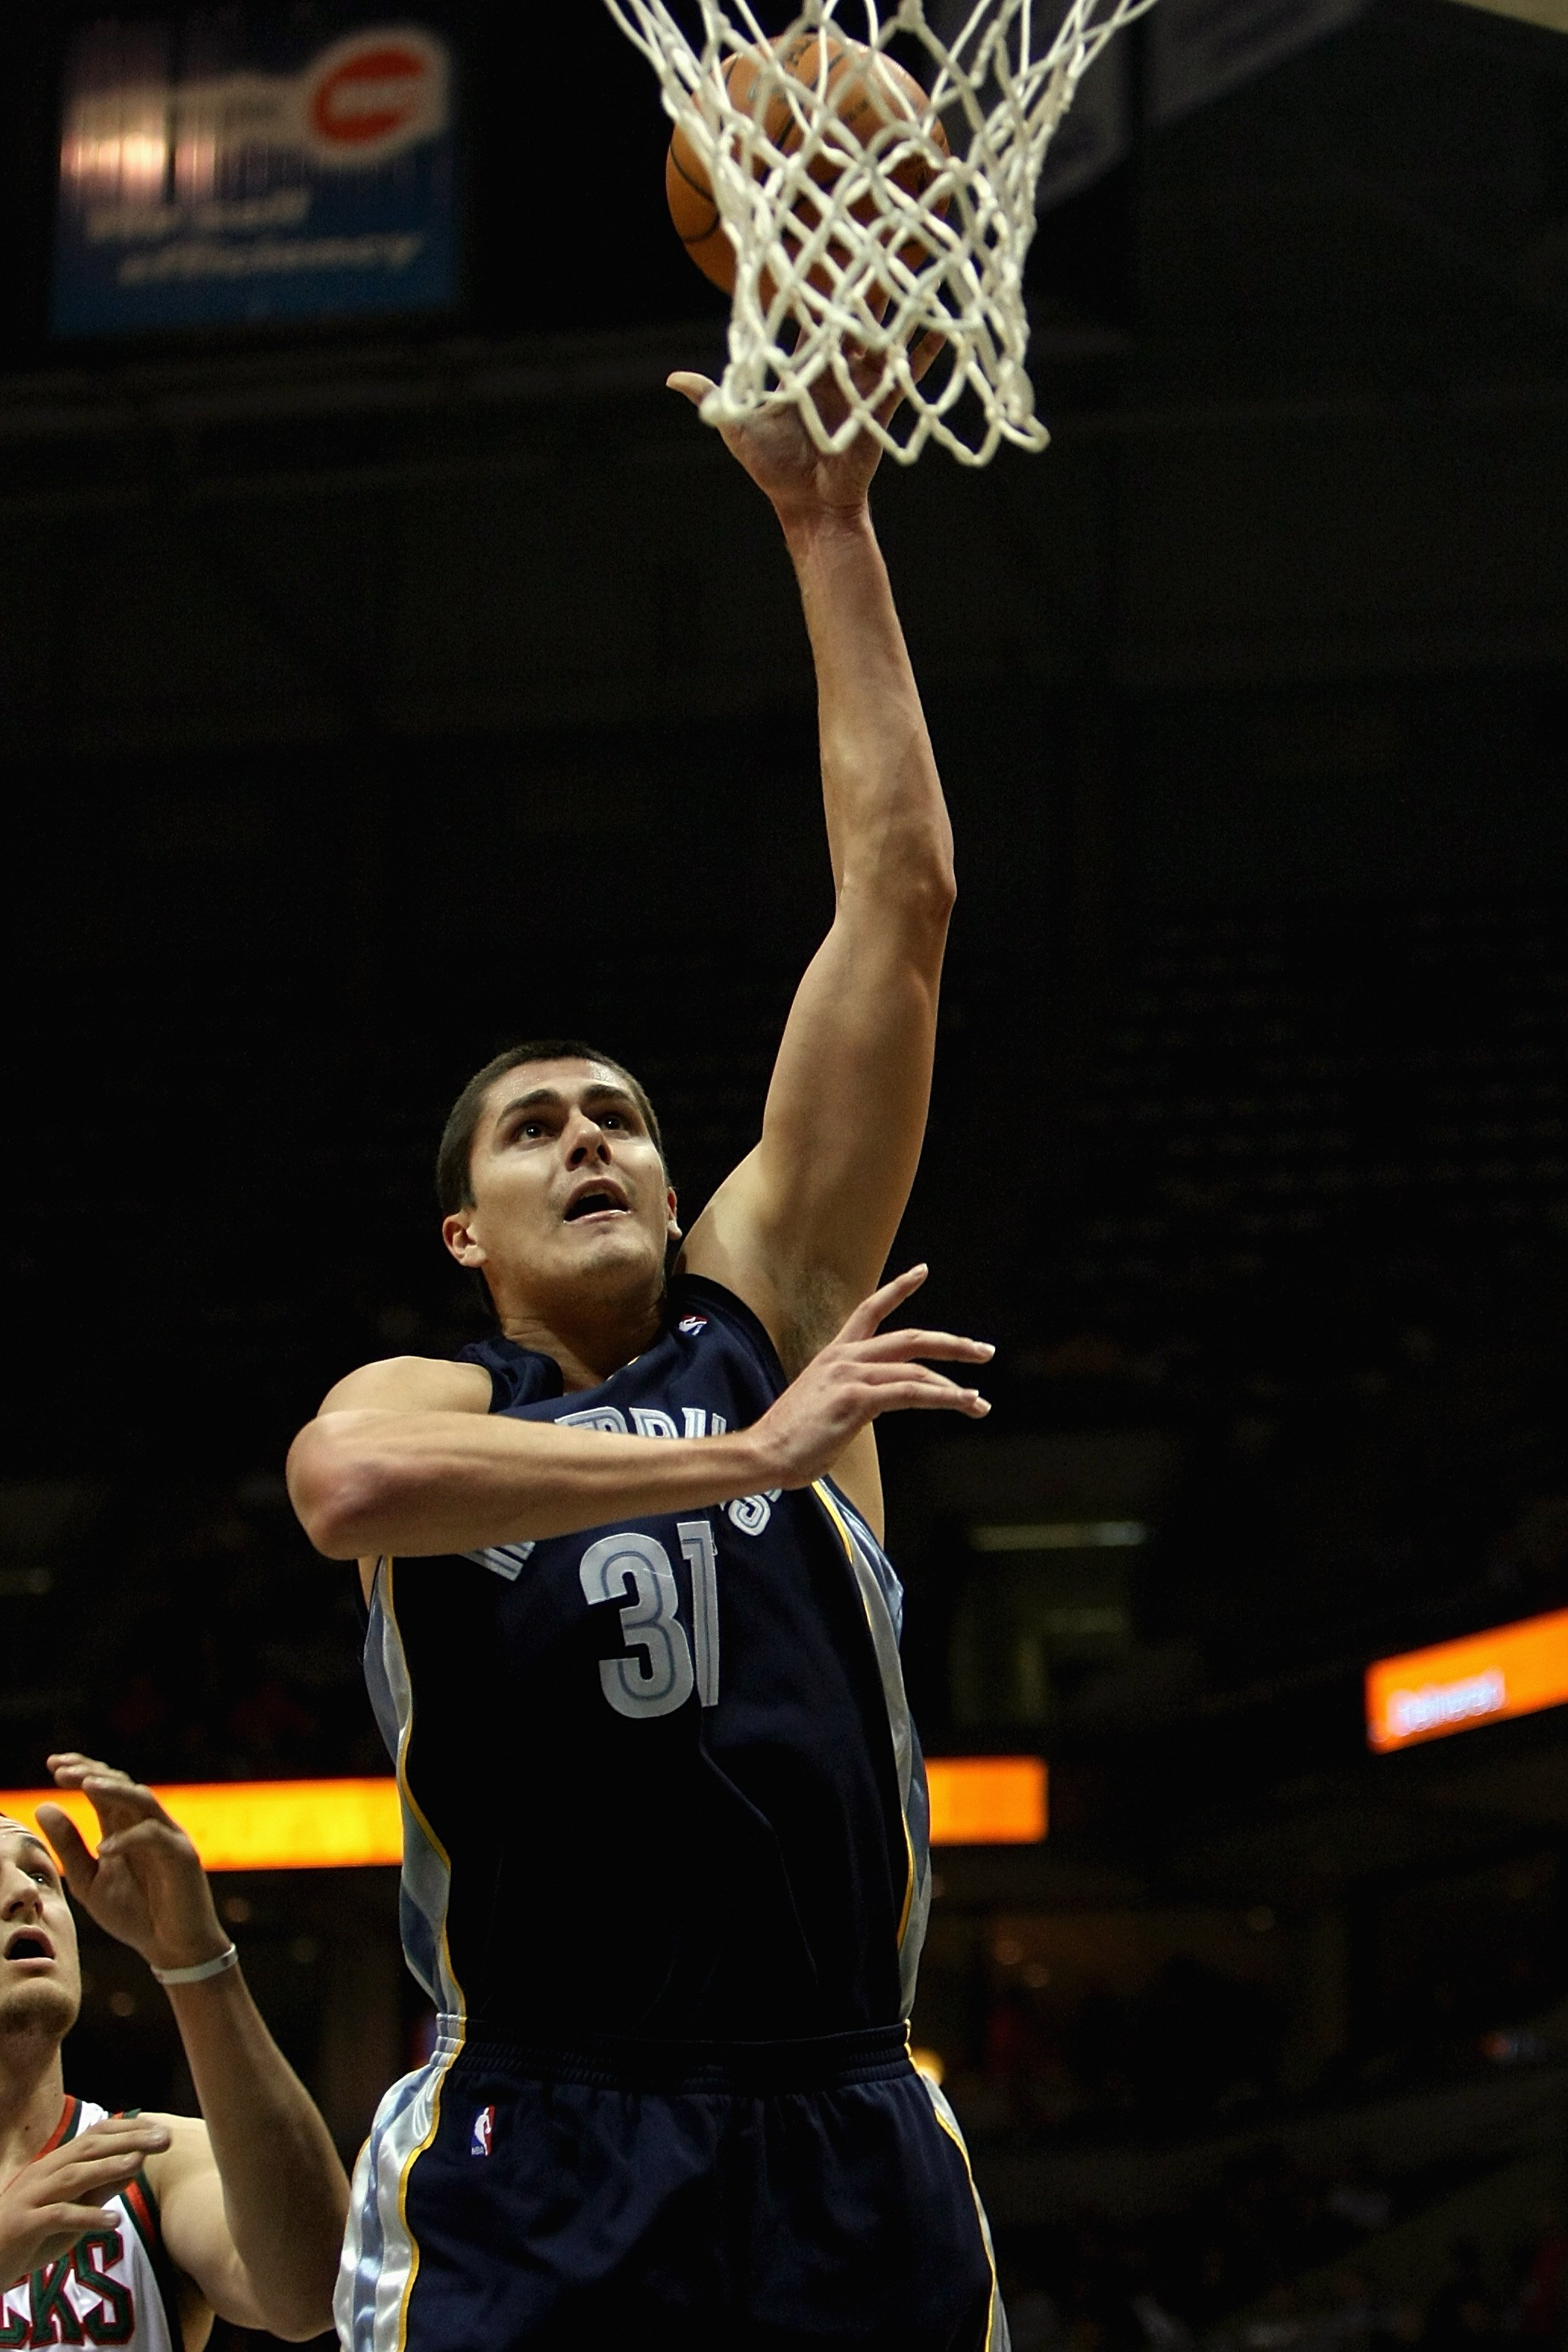 MILWAUKEE - NOVEMBER 14: Darko Milicic #31 of the Memphis Grizzlies puts a shot up during the game against the Milwaukee Bucks on November 14, 2007 at the Bradley Center in Milwaukee, Wisconsin.  The Bucks won 102-99.  NOTE TO USER: User expressly acknowl